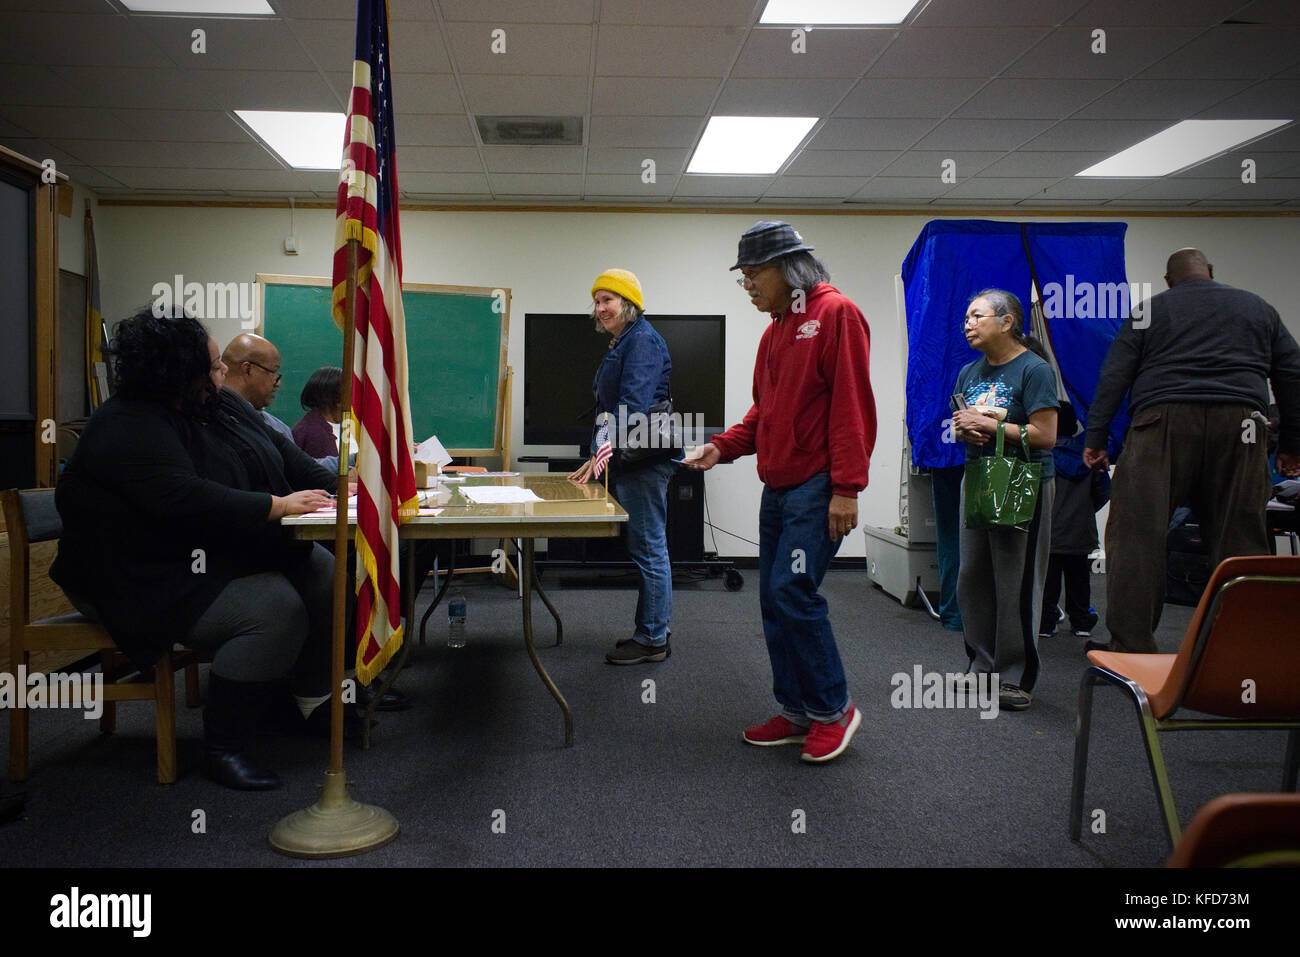 American citizens cast the ballot at a polling station on Election Day, in Philadelphia, PA. - Stock Image